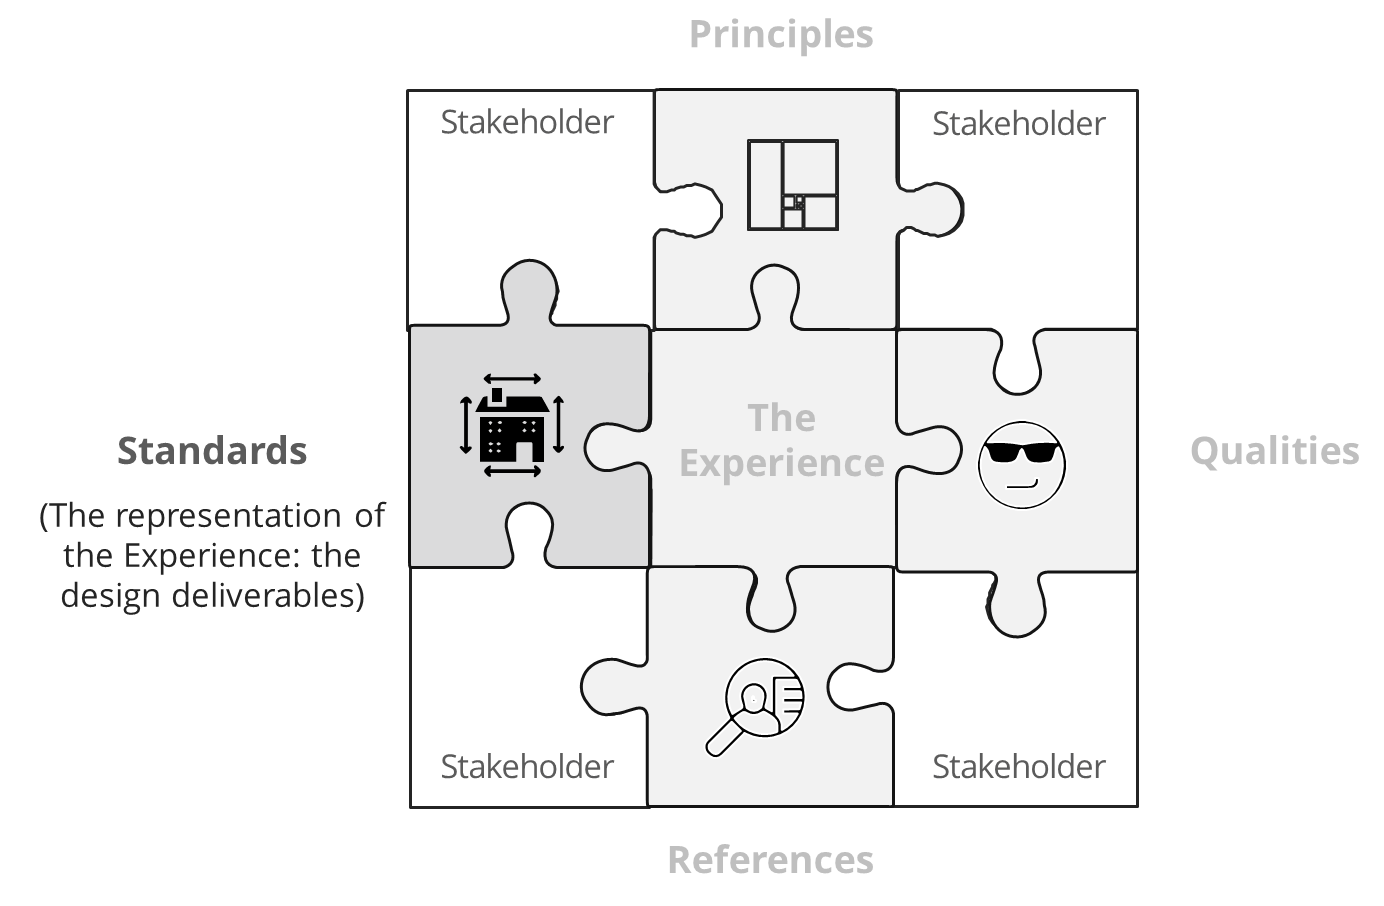 Architecture and User Experience, Part 11: The PQRS Model